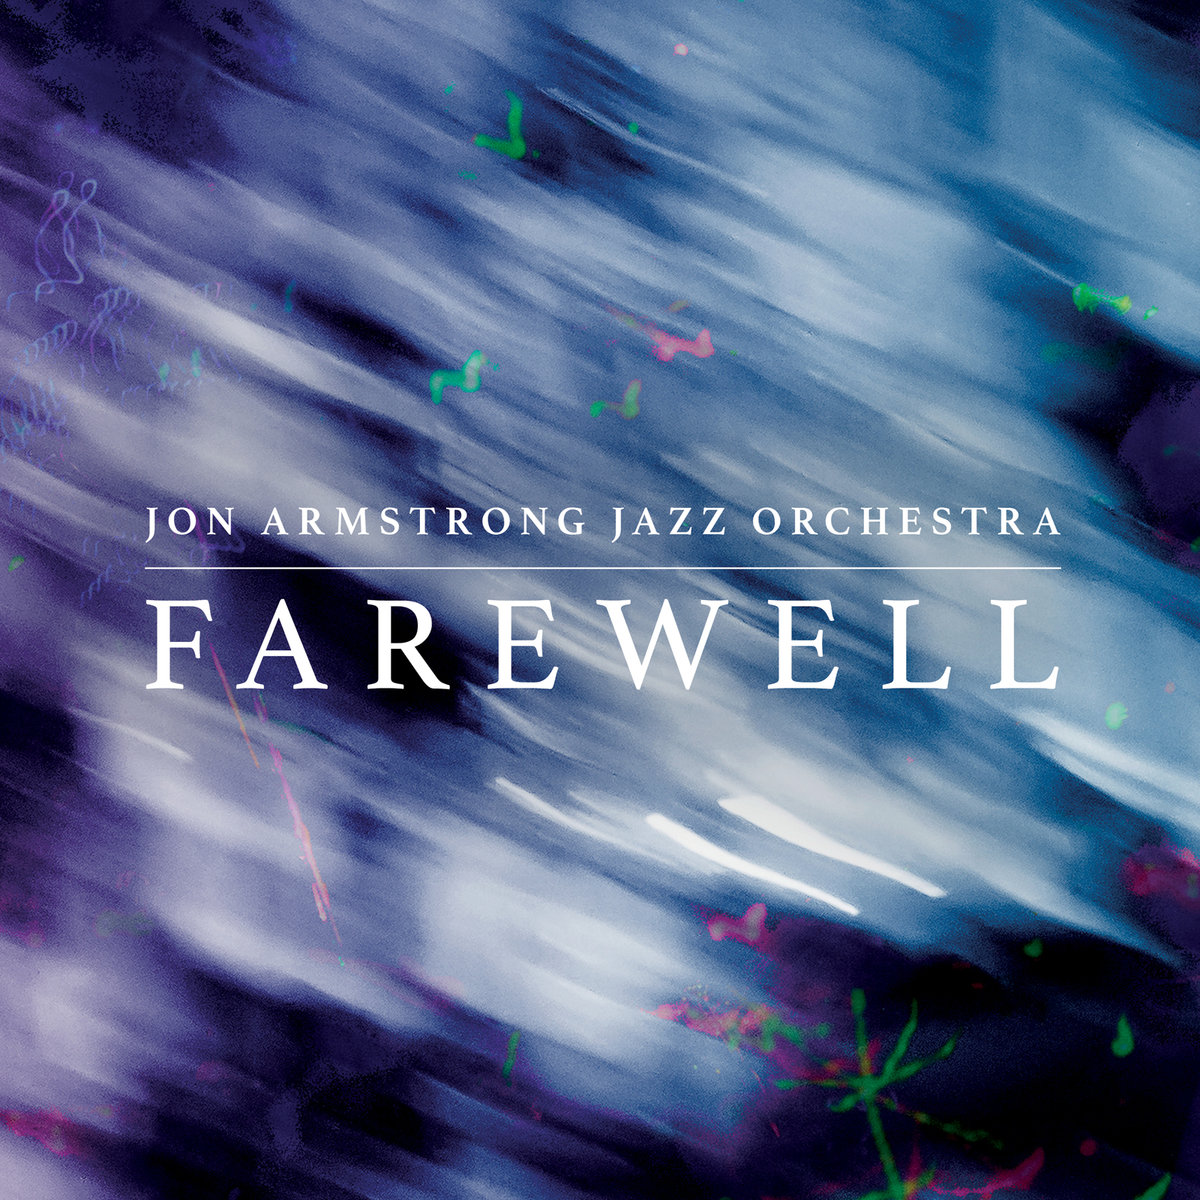 Jon Armstrong Jazz Orchestra | Farewell